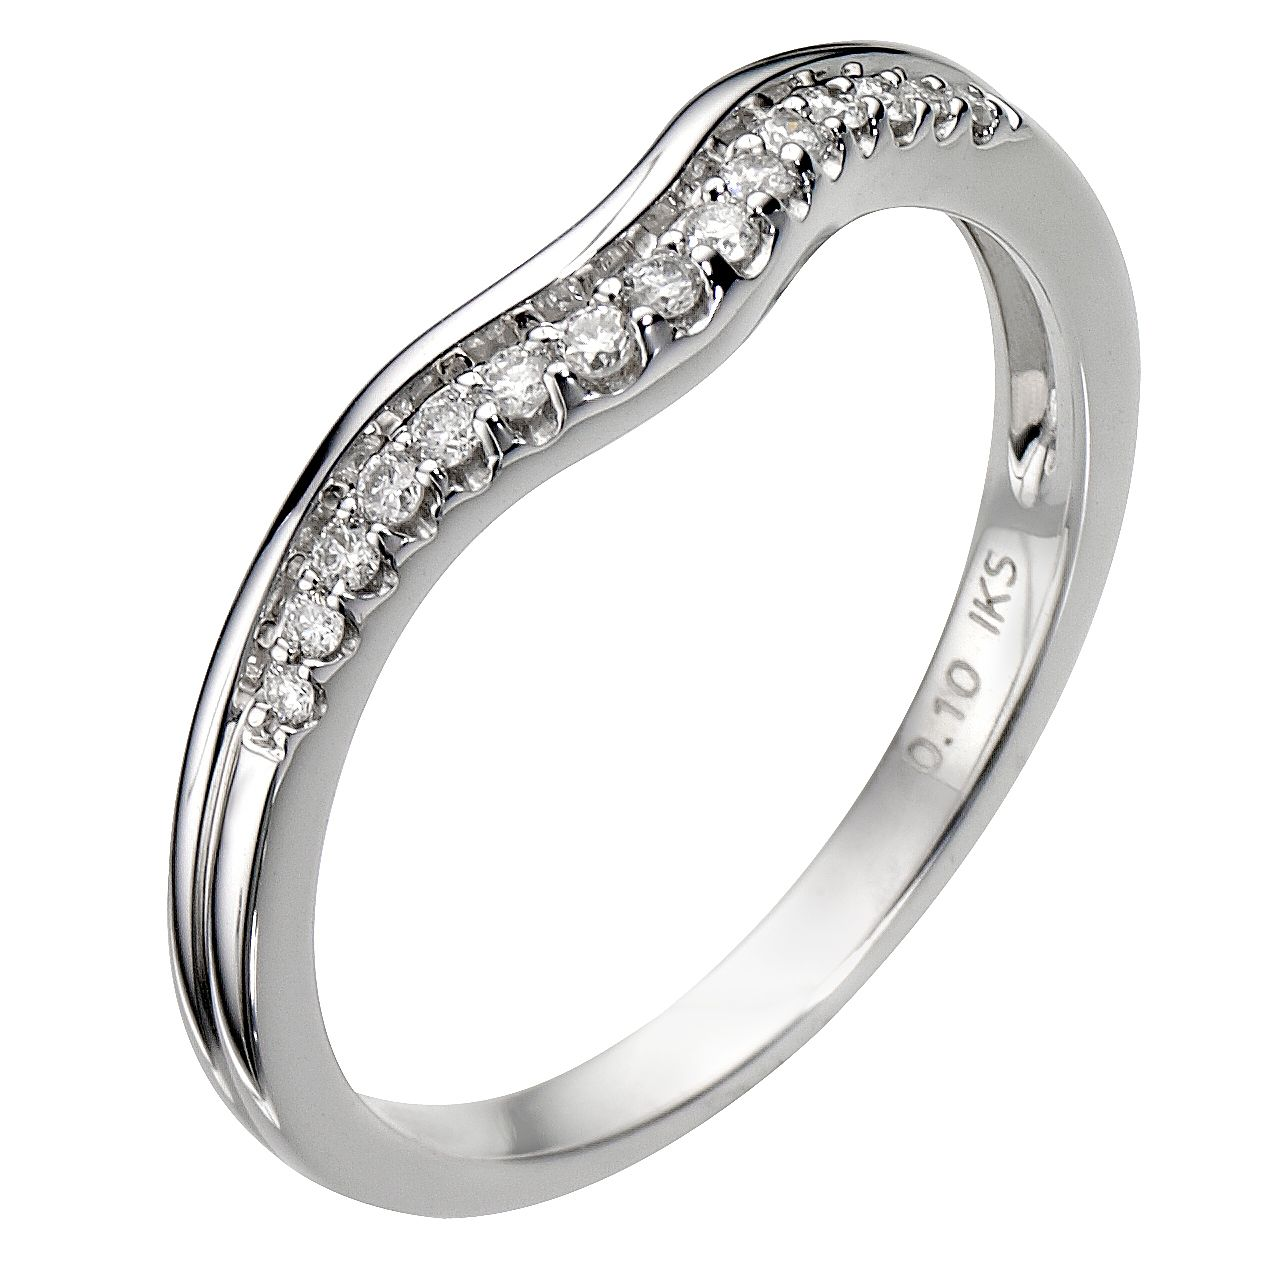 18ct White Gold U Shaped 0.10ct Diamond Ring - Product number 8089957